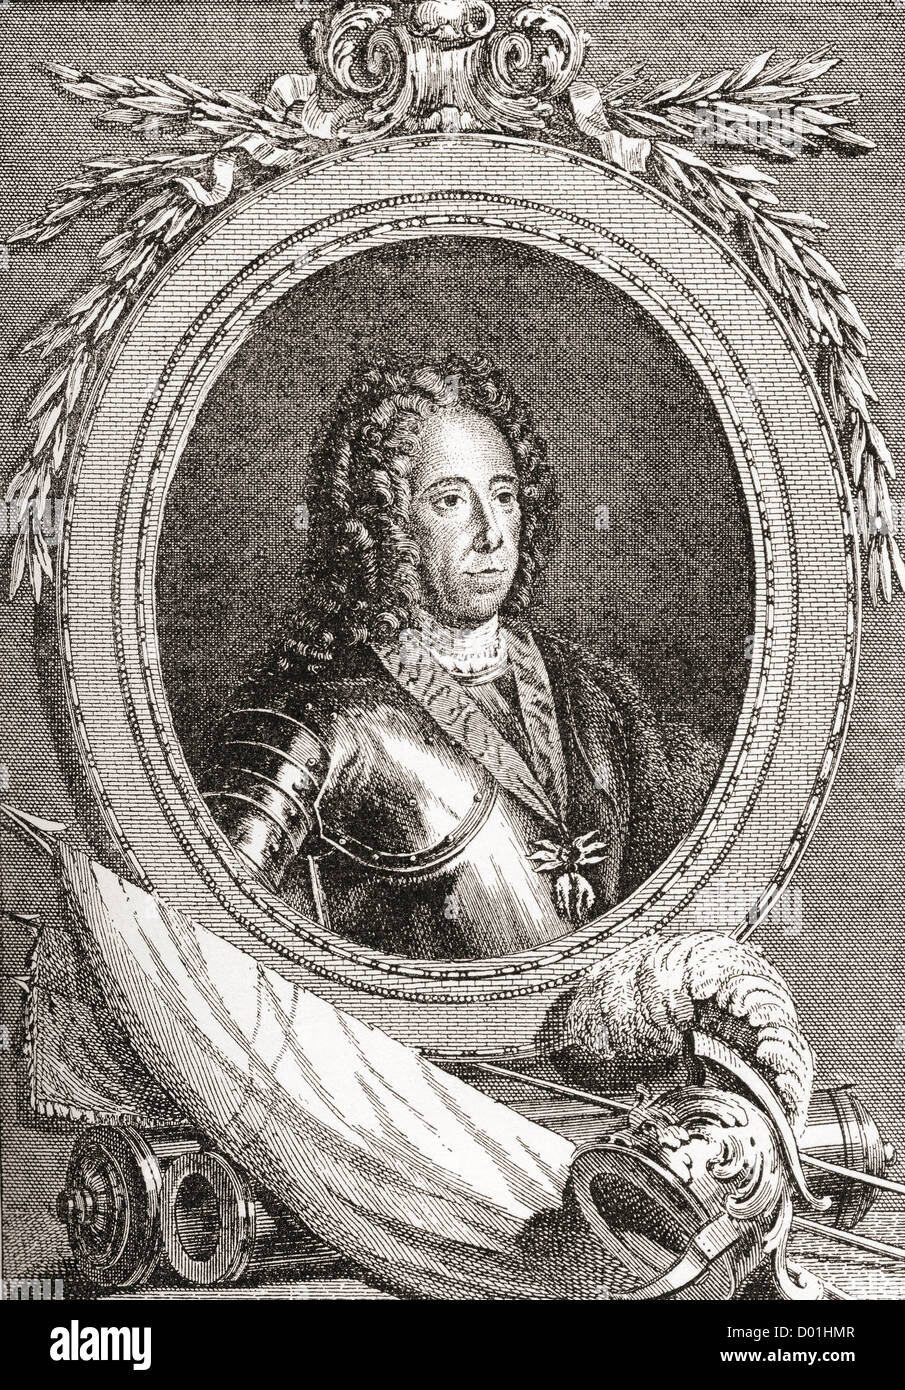 Prince Eugene of Savoy, 1663 – 1736. French military commander. - Stock Image